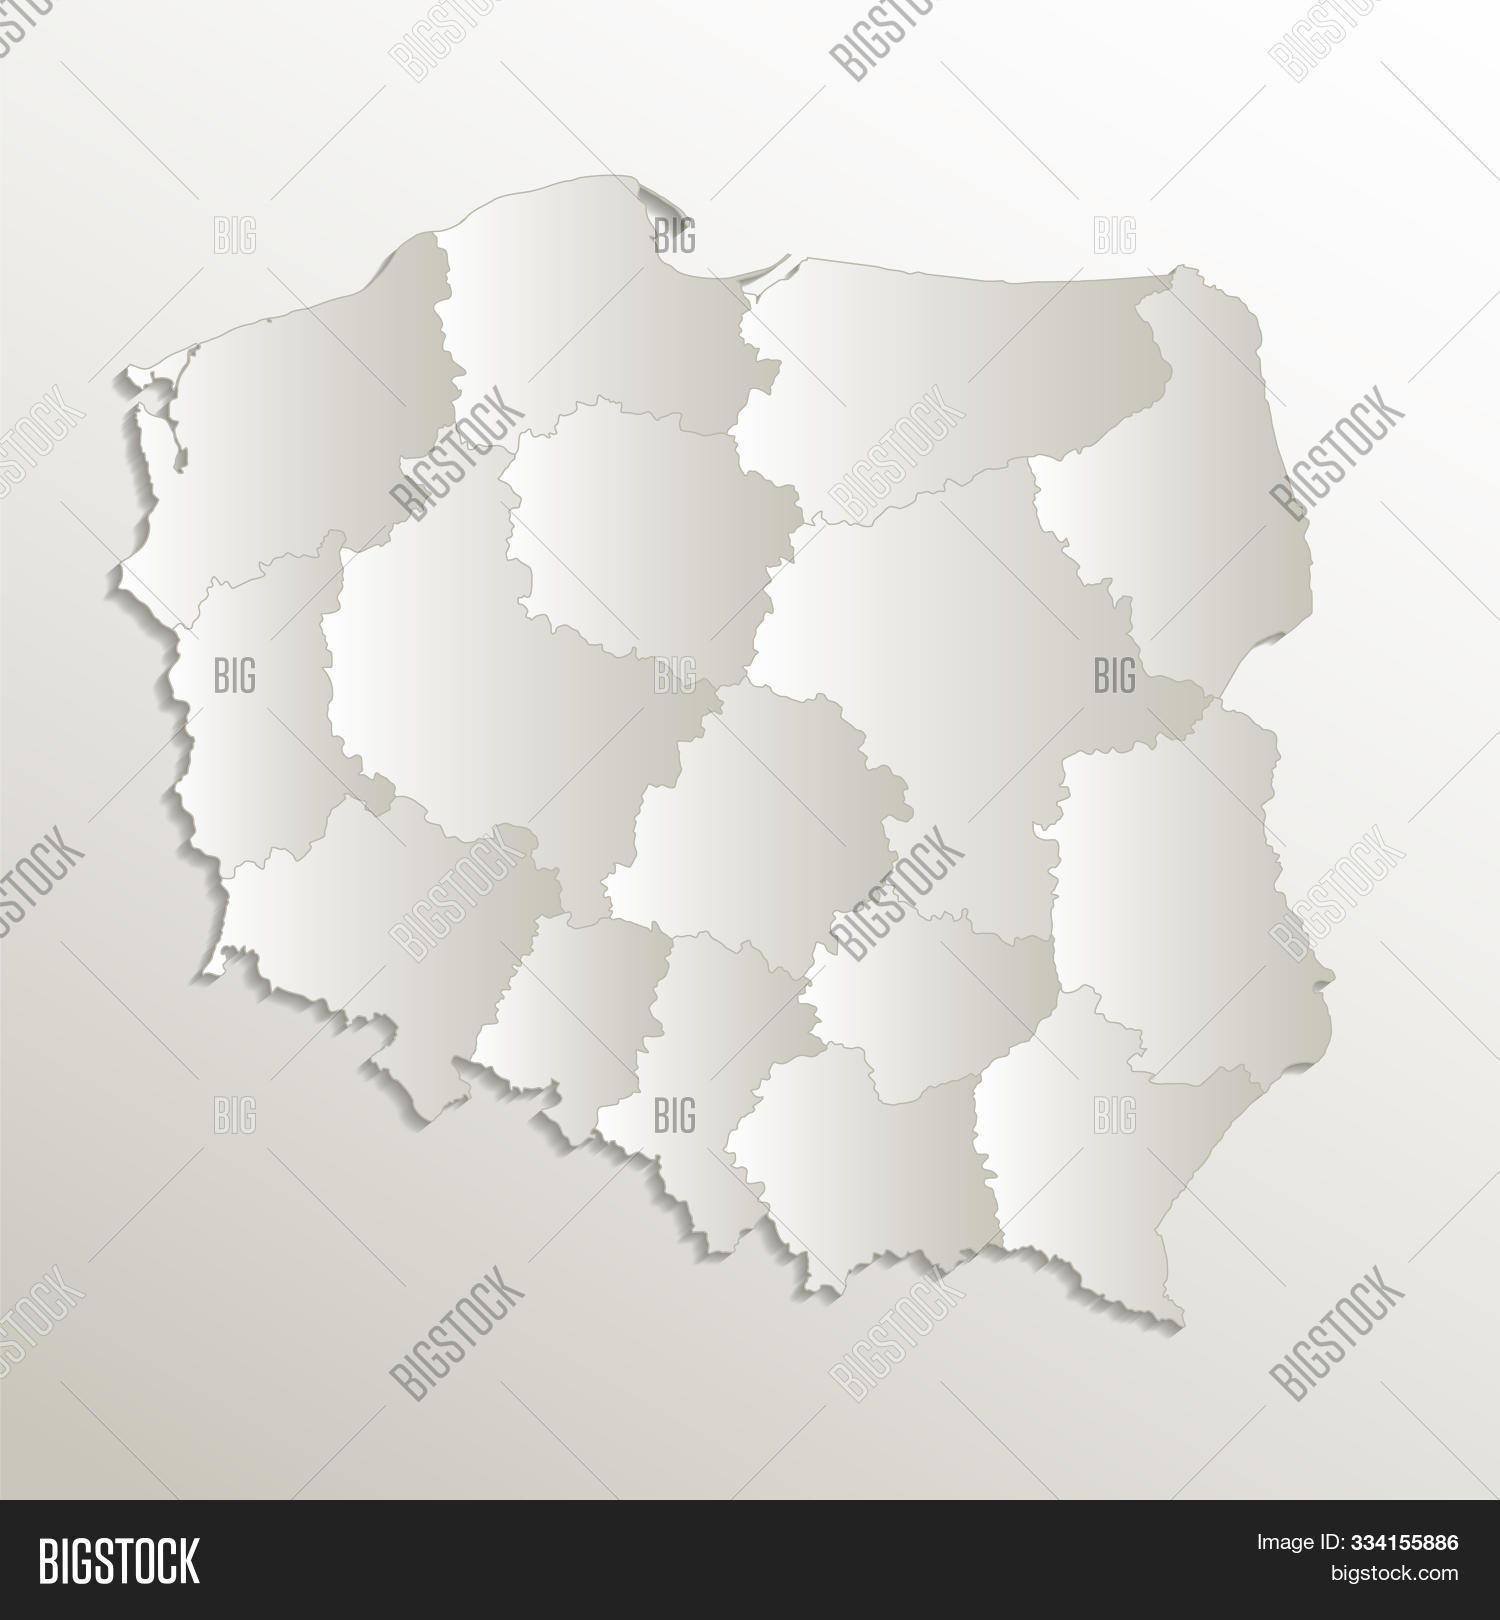 Picture of: Poland Map Separates Image Photo Free Trial Bigstock